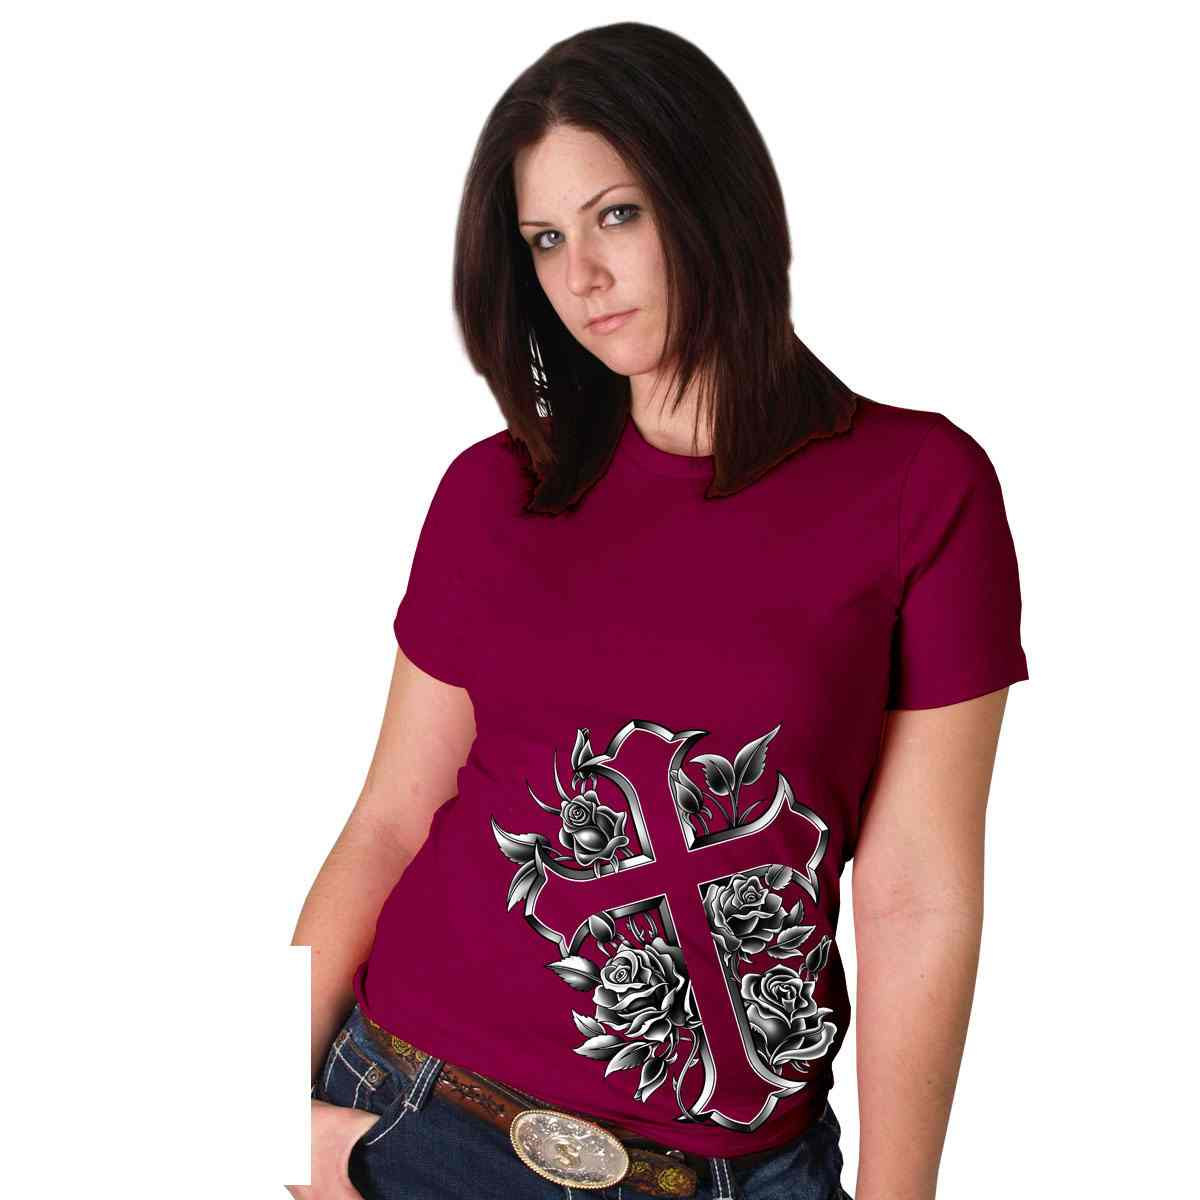 Silver Foil Cross Full Cut Ladies T-Shirt, GLR1214